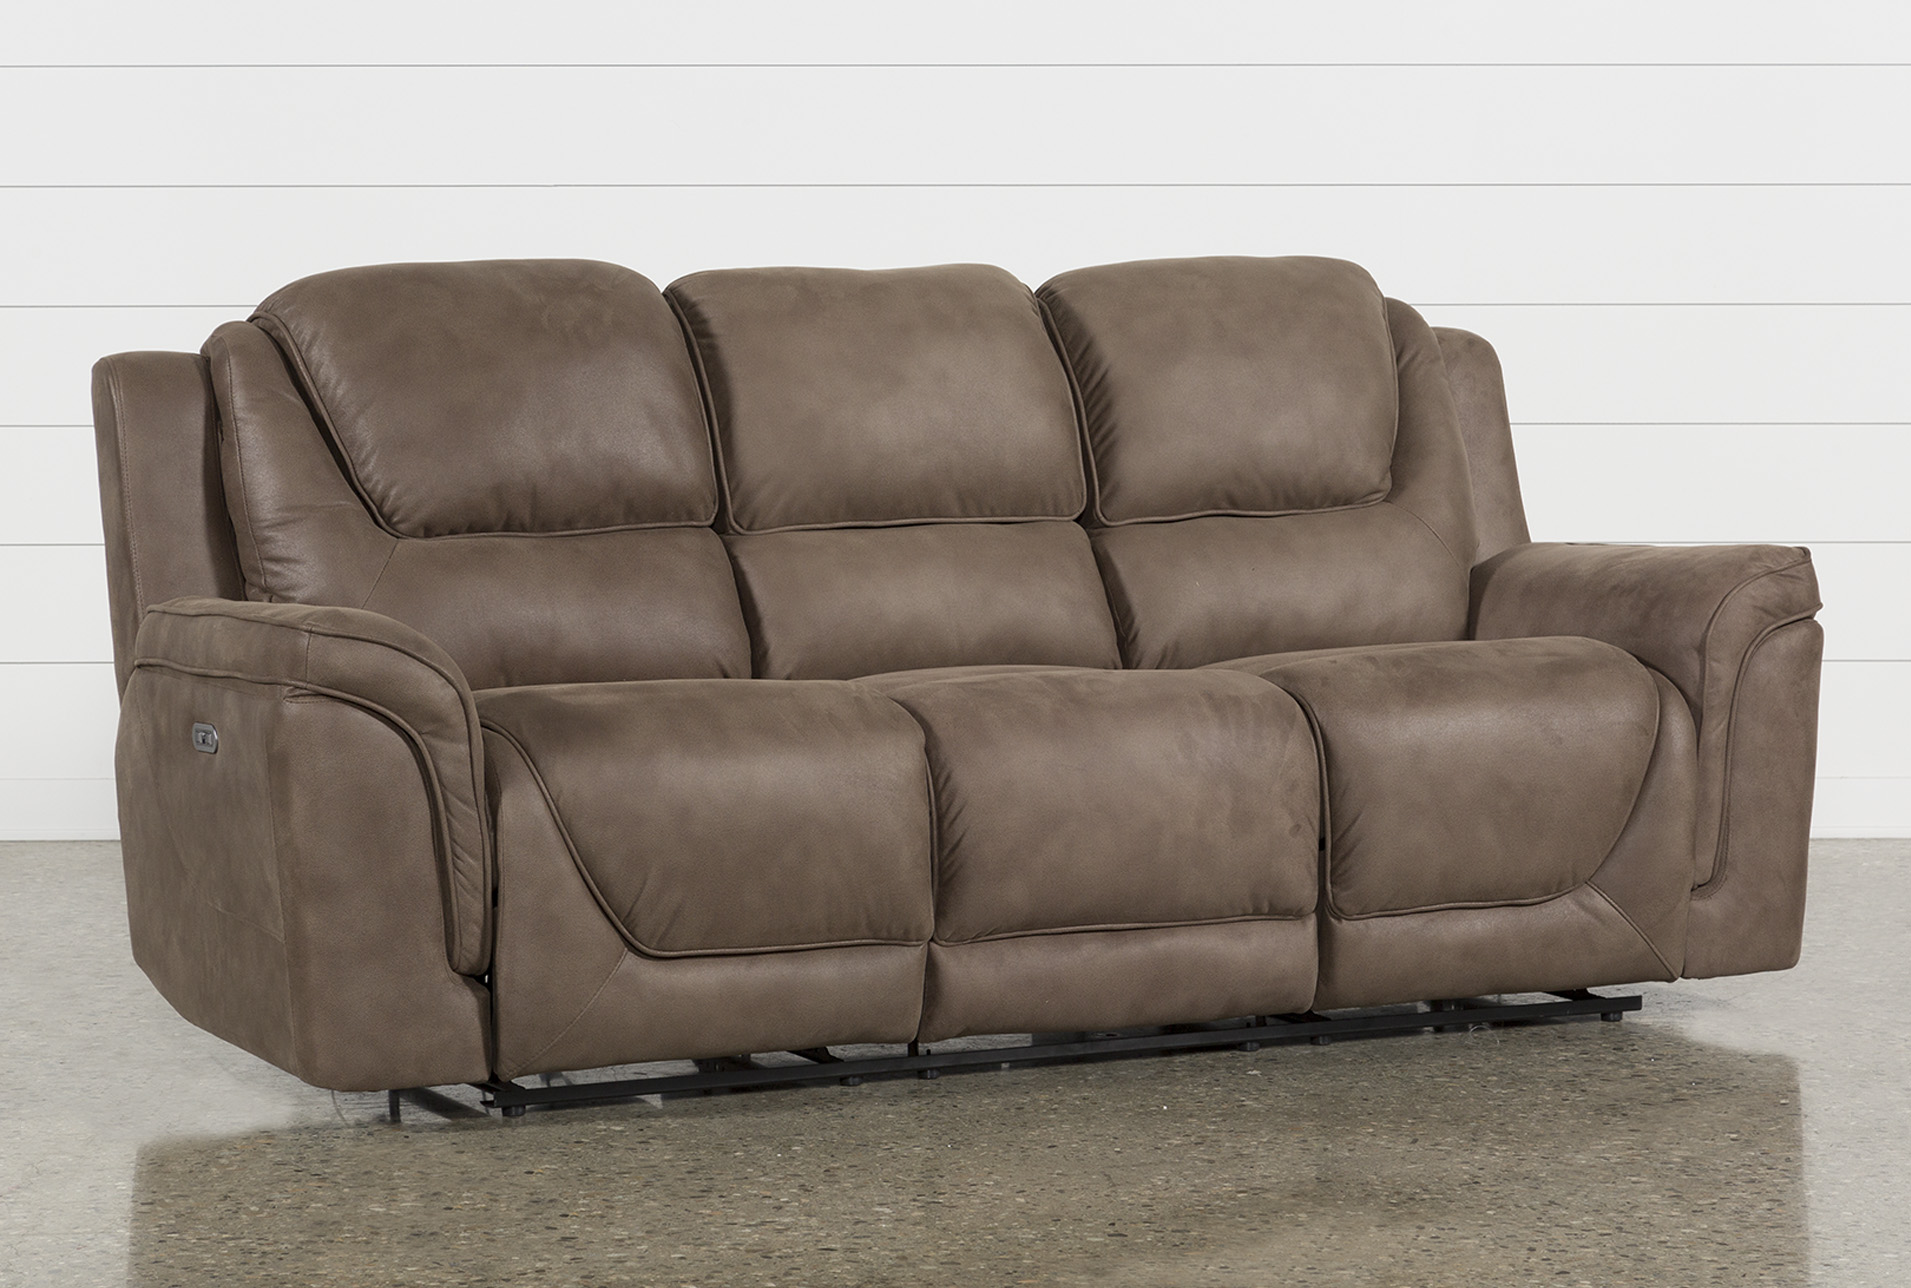 denver sofa cleaning collect old birmingham fawn power reclining with headrest usb living amp qty 1 has been successfully added to your cart